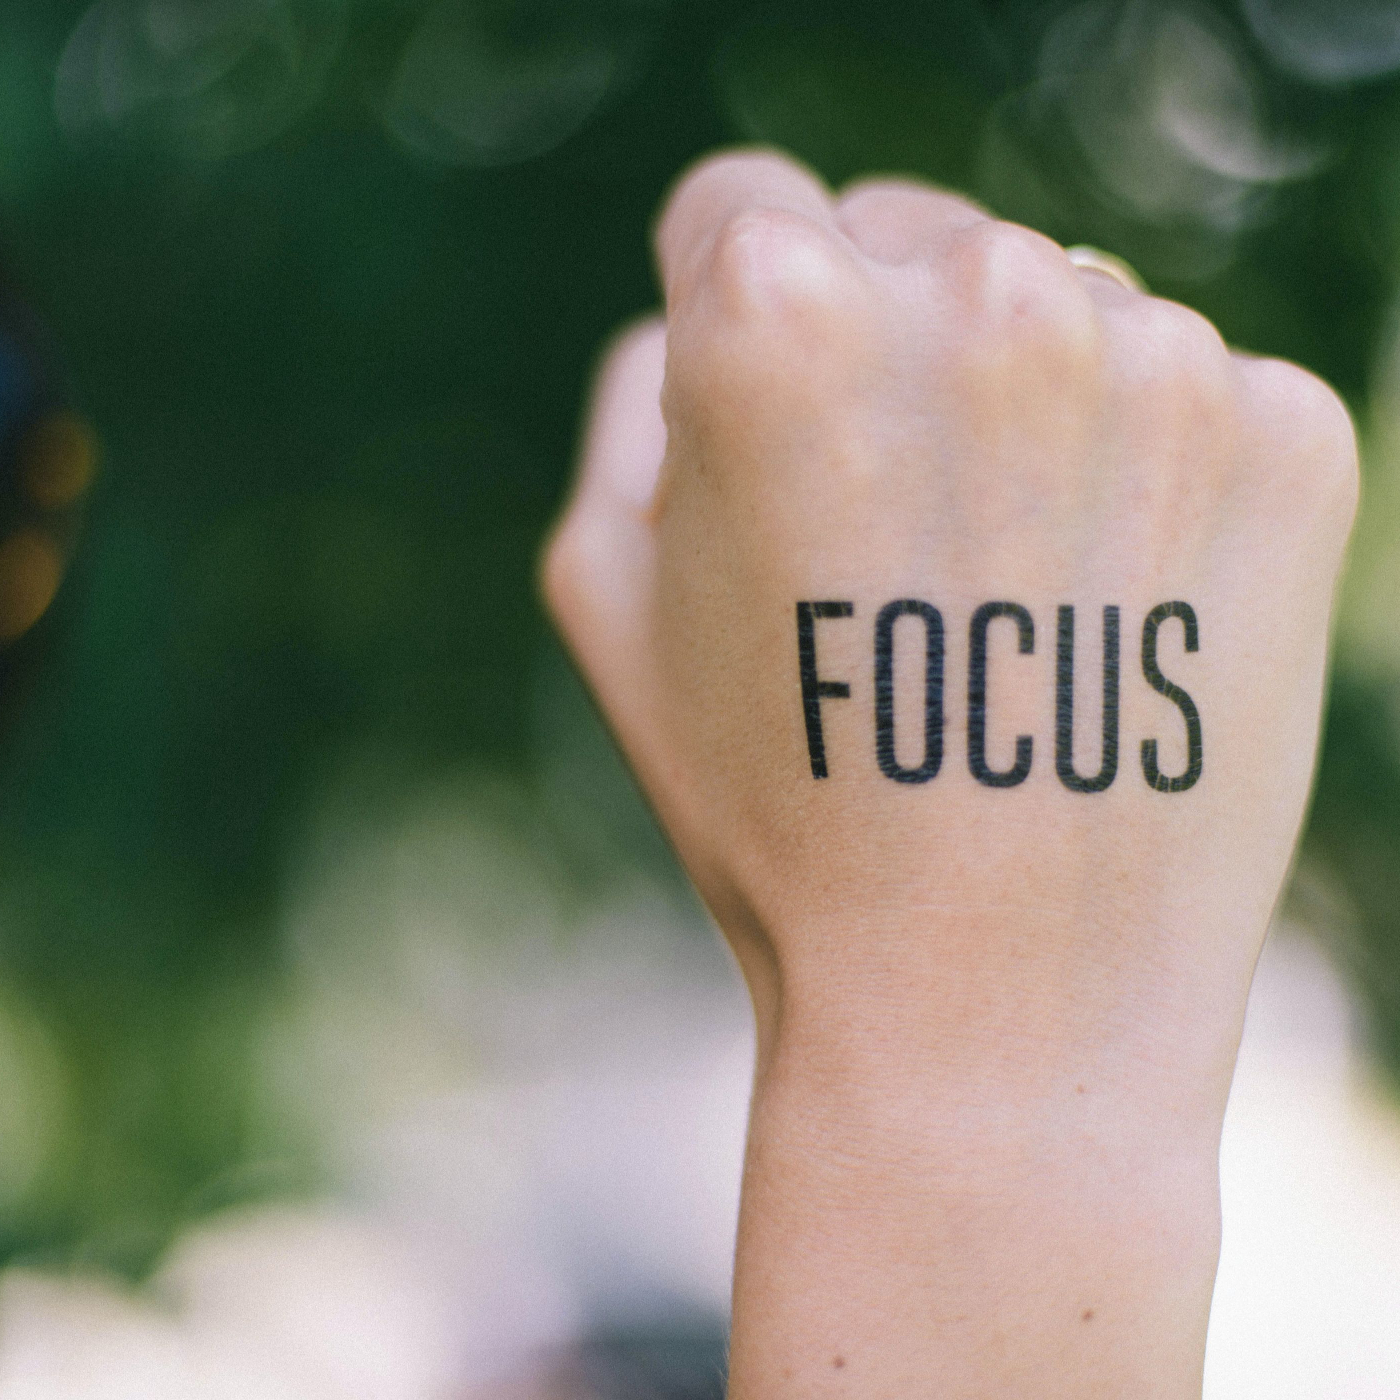 Pushing away distractions: How to improve focus and concentration